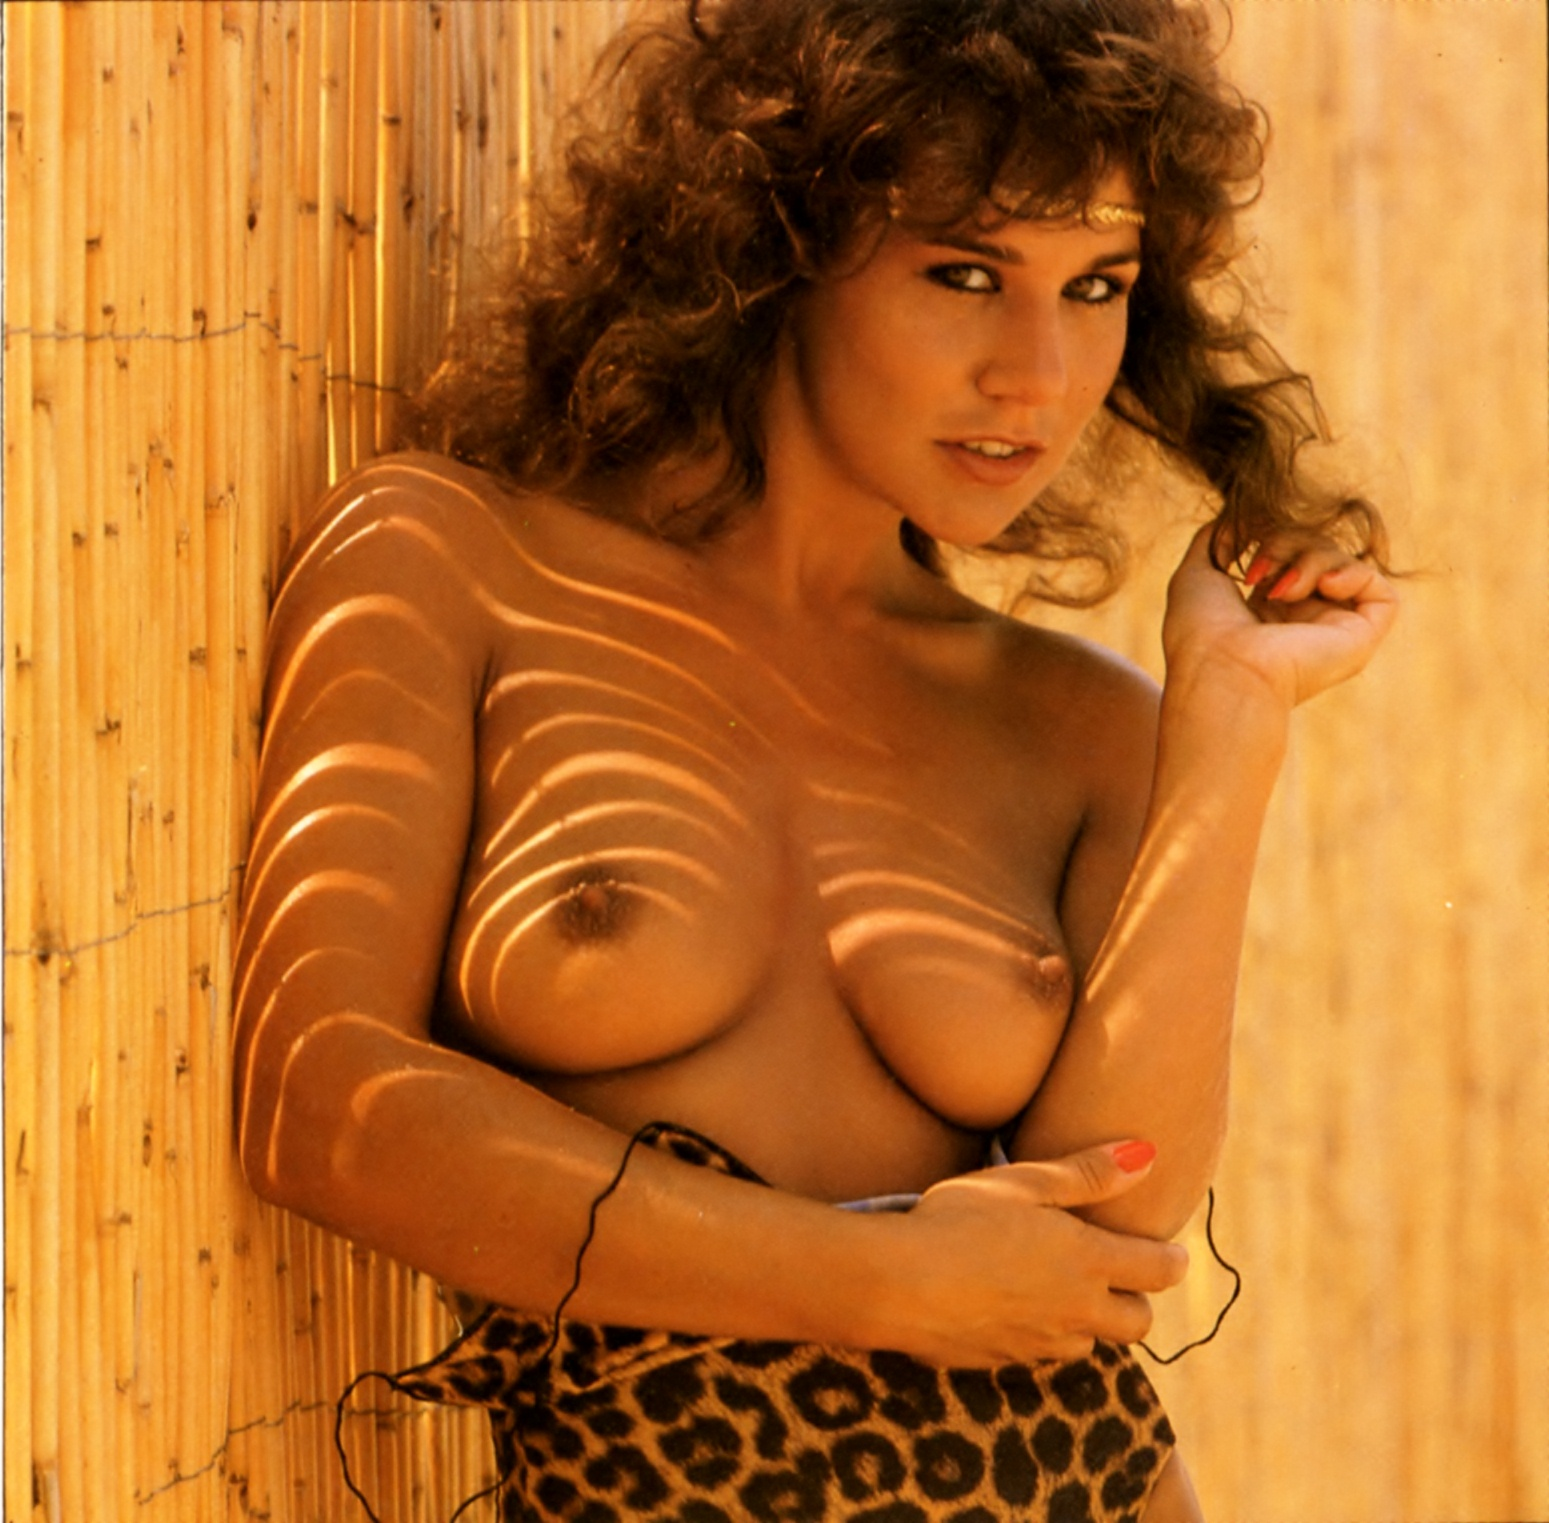 Celebrities who posed nude for playboy magazine